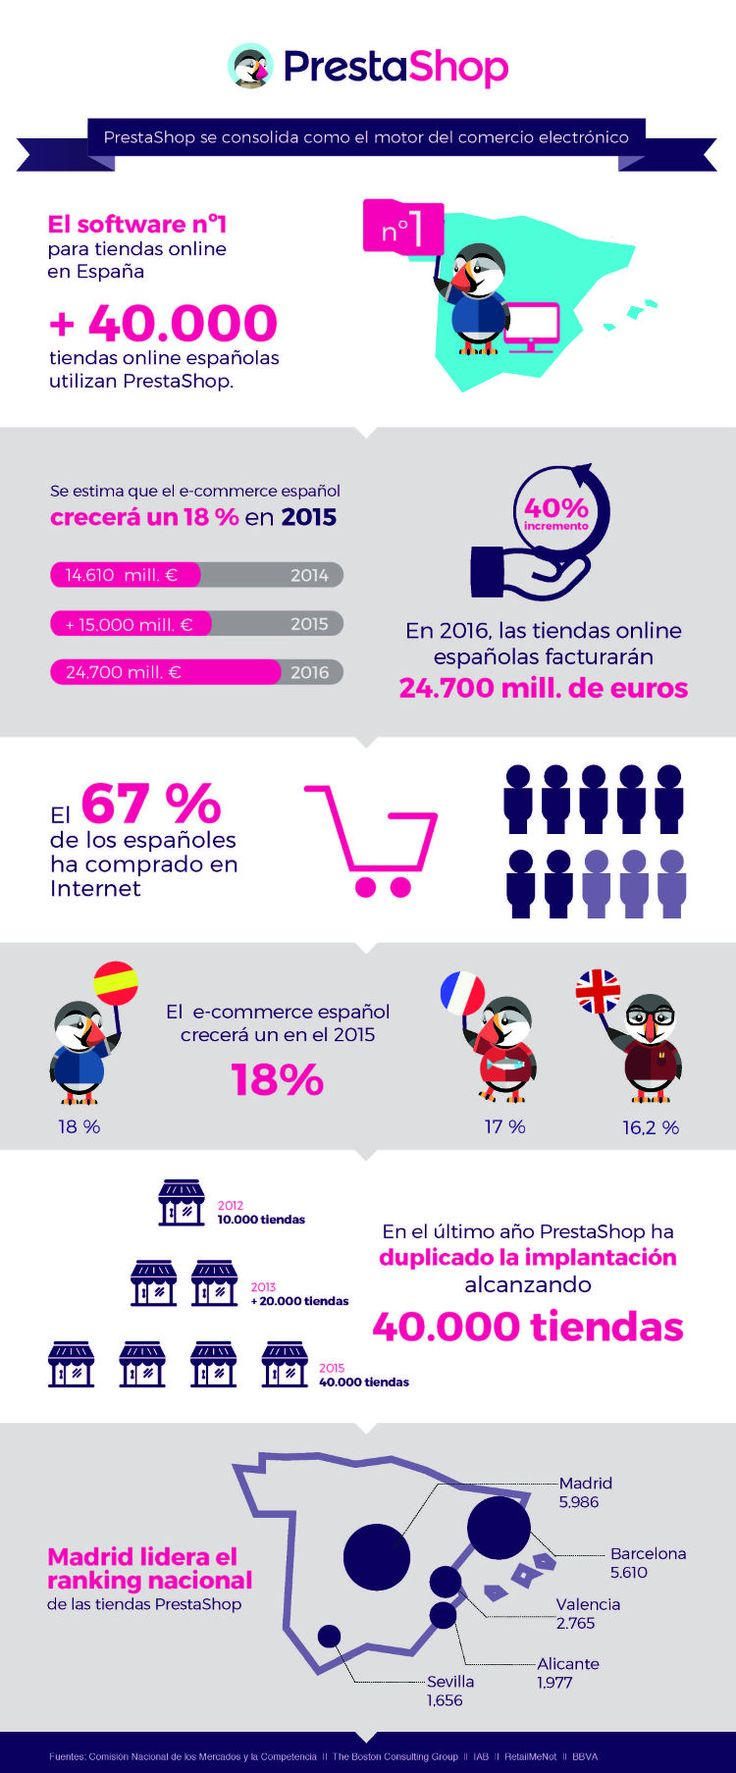 #ECOMMERCE ~ In Spain, online sales are expected to reach 24.7 billion Euros this year; #Prestashop already is the basis for more than 40.000 online stores here (more data and article in Spanish): http://www.actualidadecommerce.com/prestashop-supera-las-40-000-tiendas-online-en-espana-y-se-consolida-como-motor-del-ecommerce/